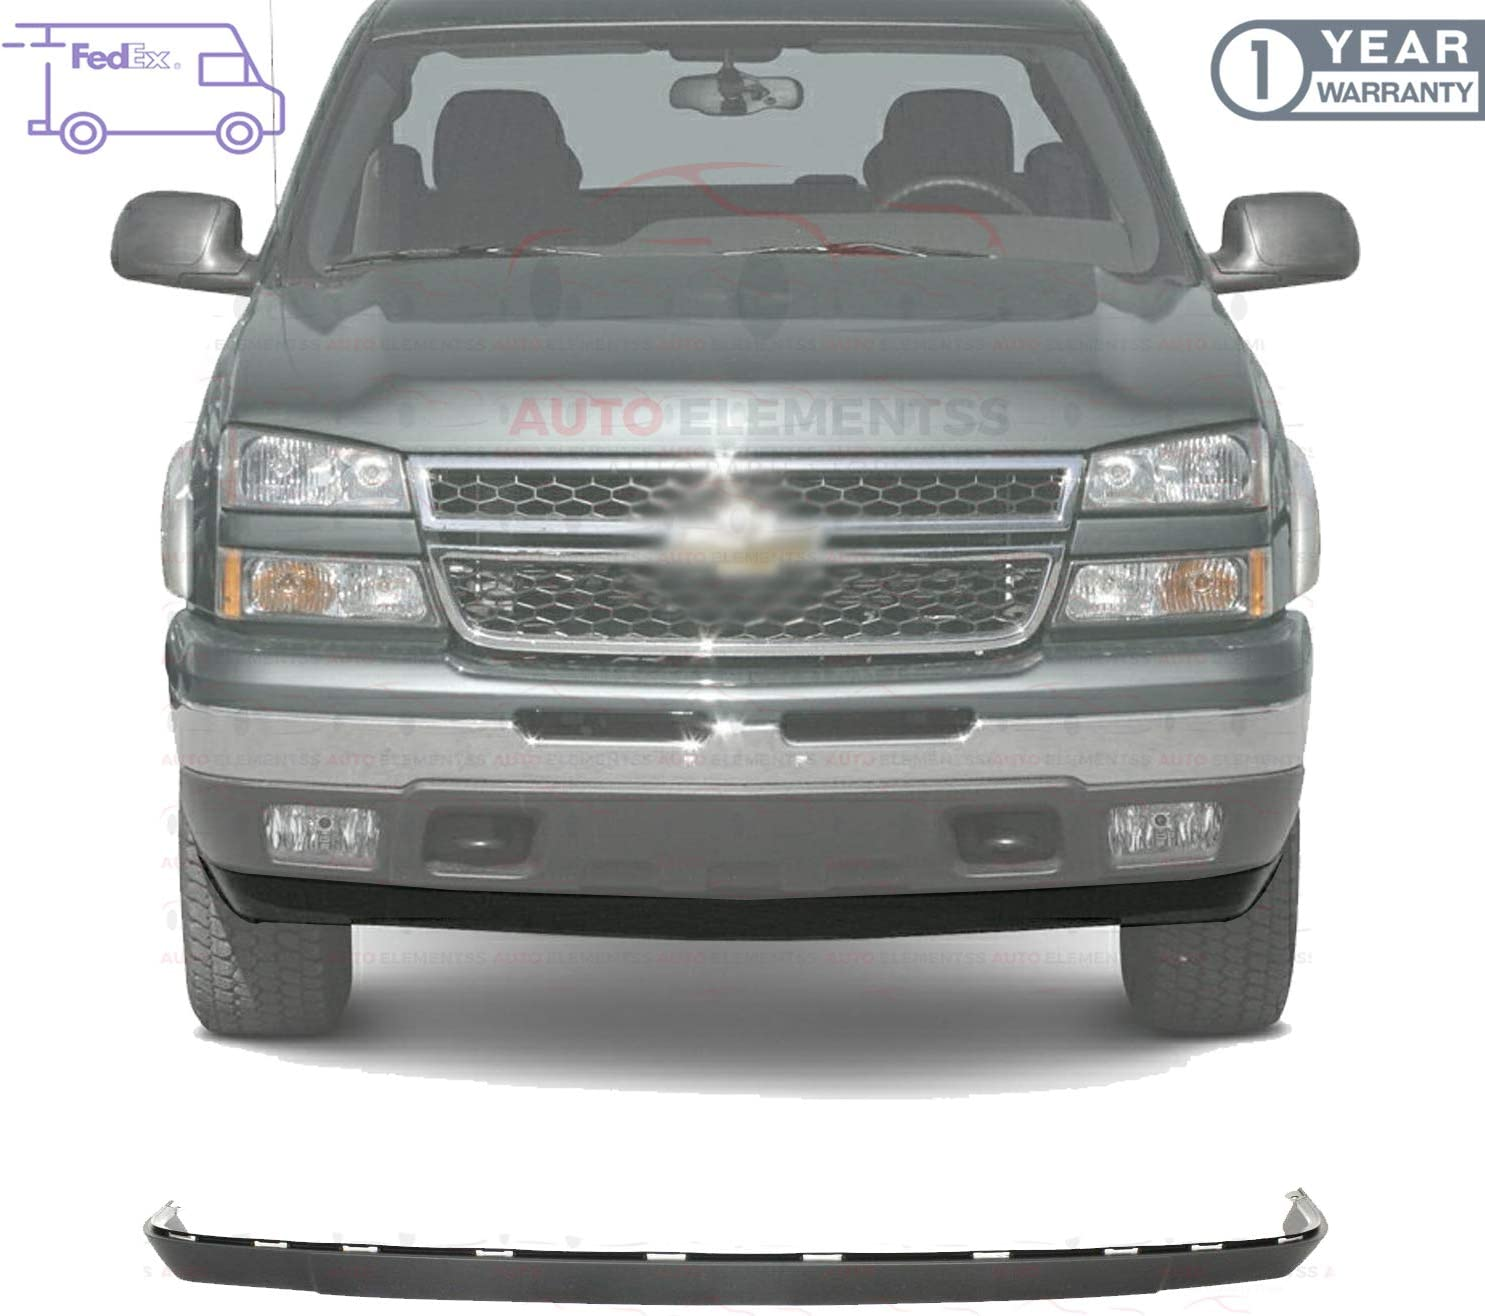 Amazon Com Autoelementss New Front Lower Valance Air Deflector Extension Textured Plastic For 2003 2006 Chevrolet Silverado 1500 2005 2006 Avalanche Direct Replacement 10386198 Automotive